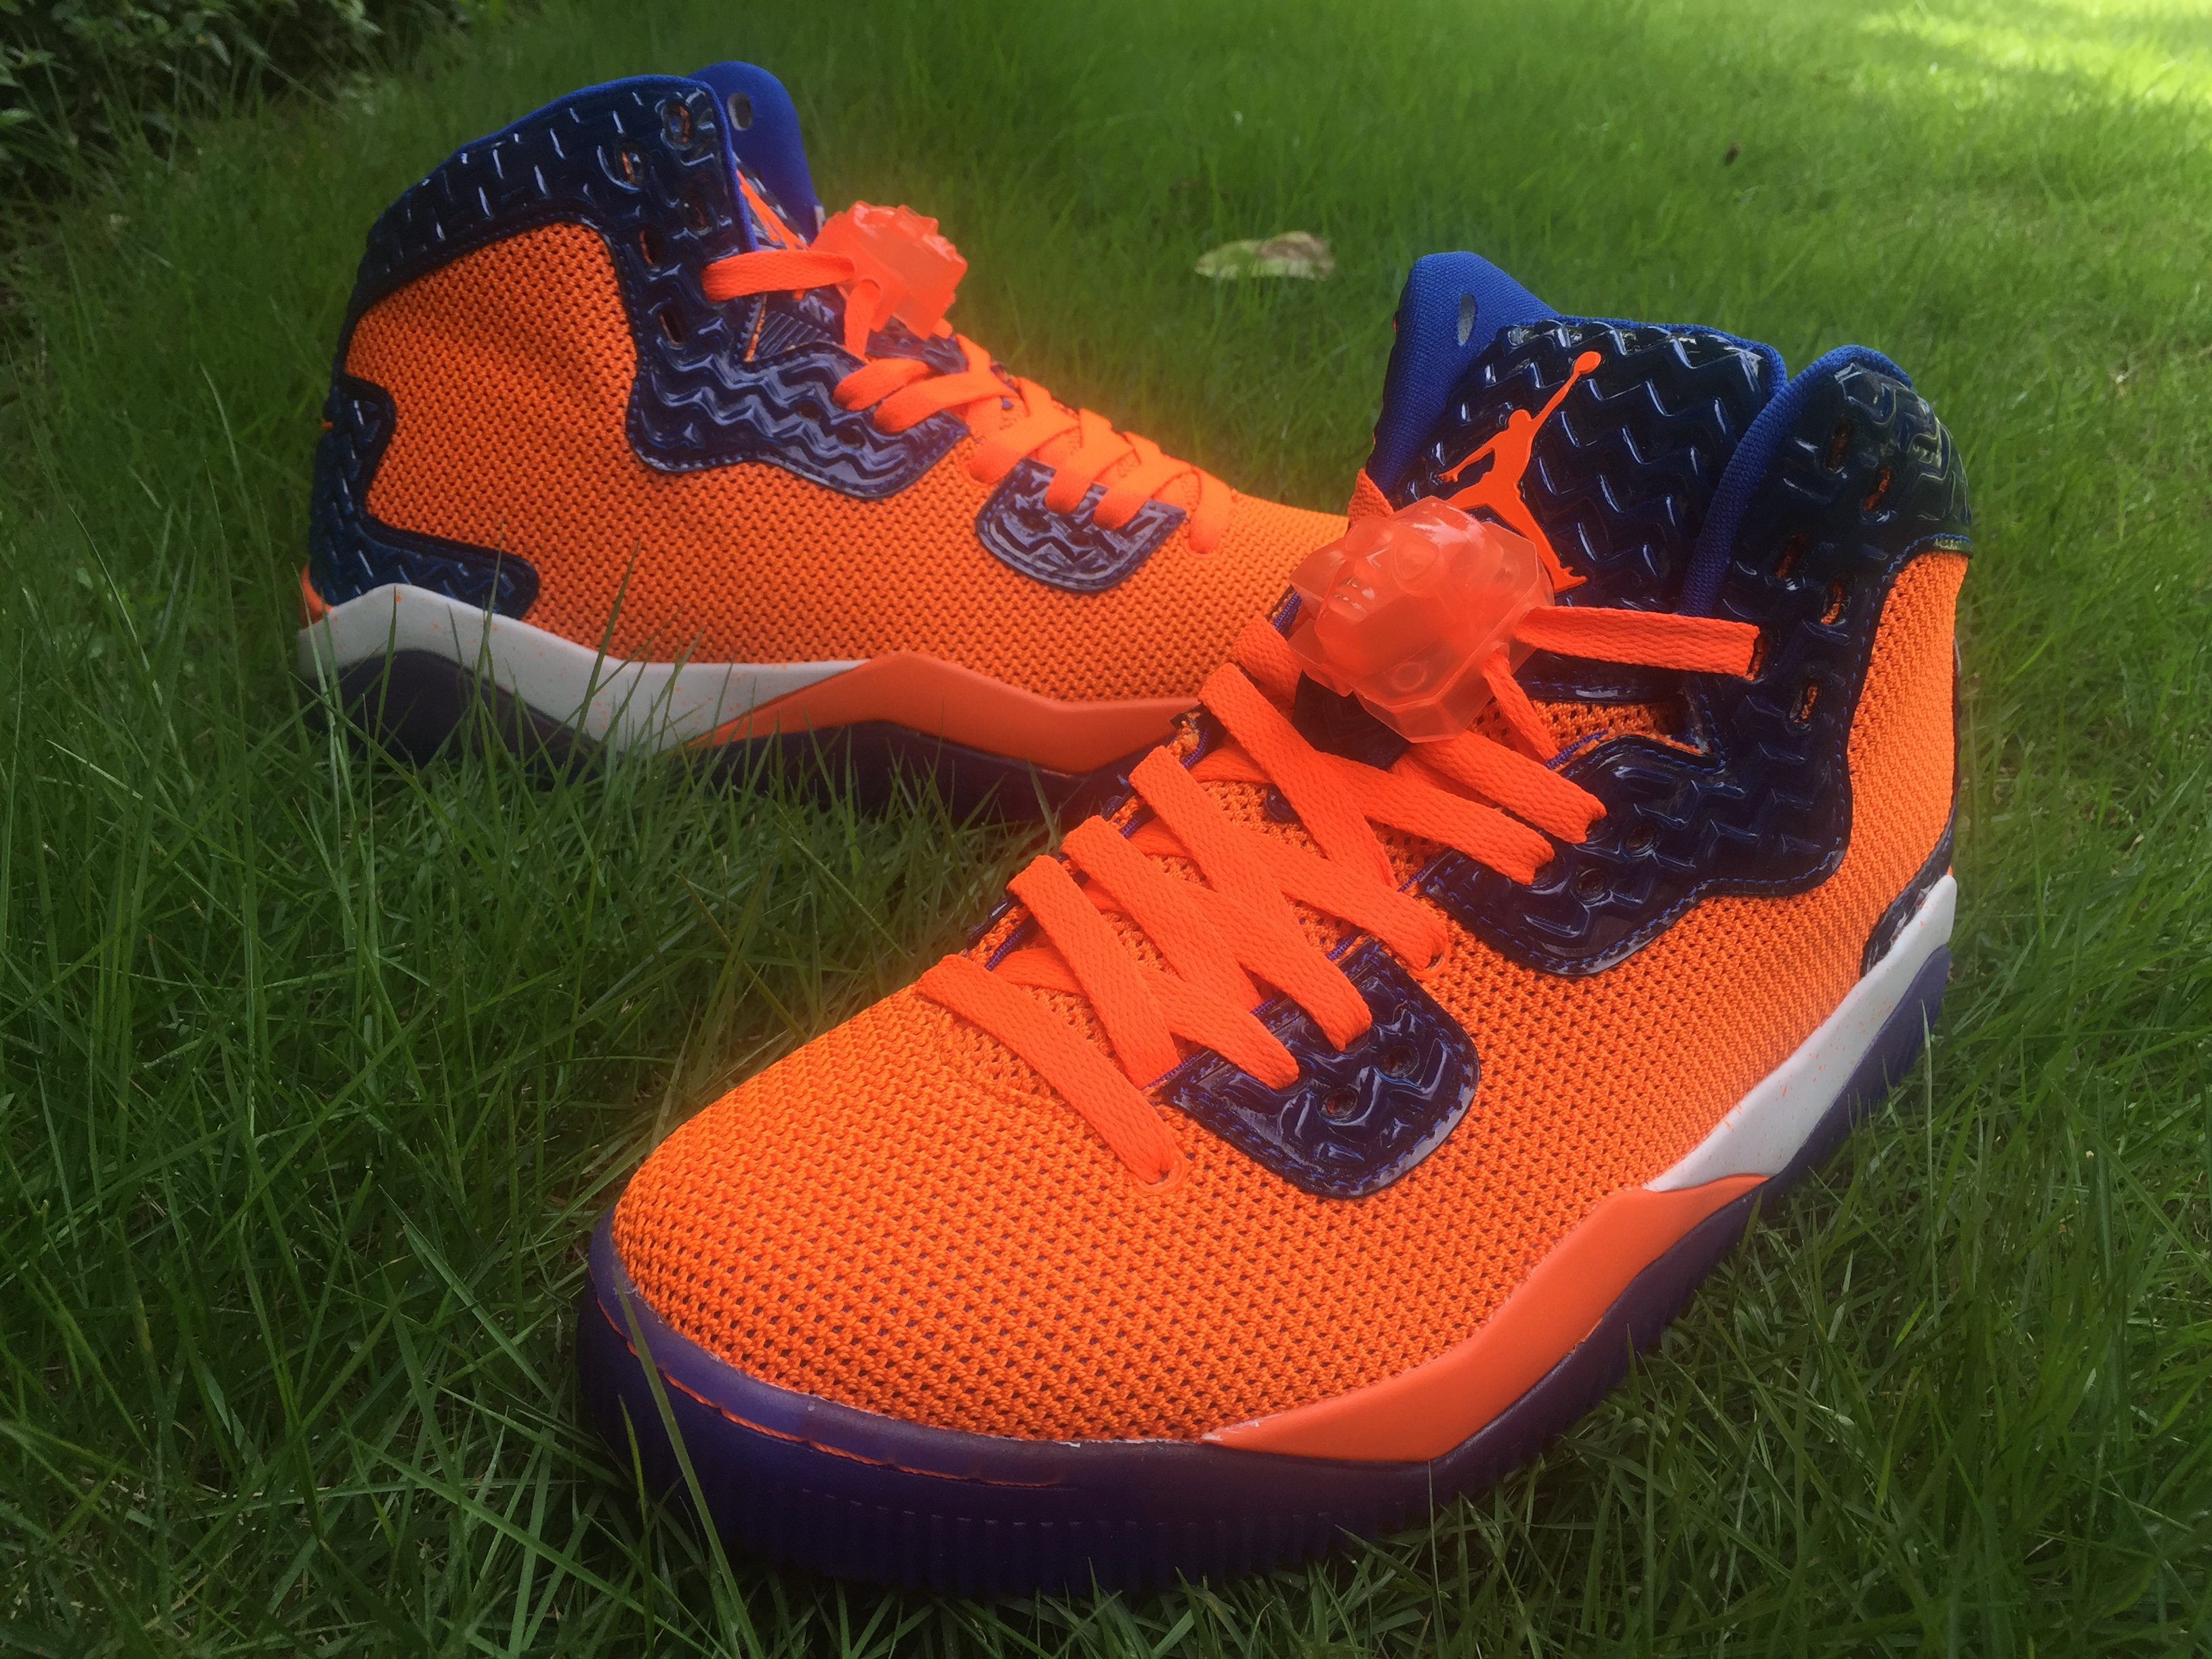 Air Jordan Spizike Orange Dark Blue Shoes